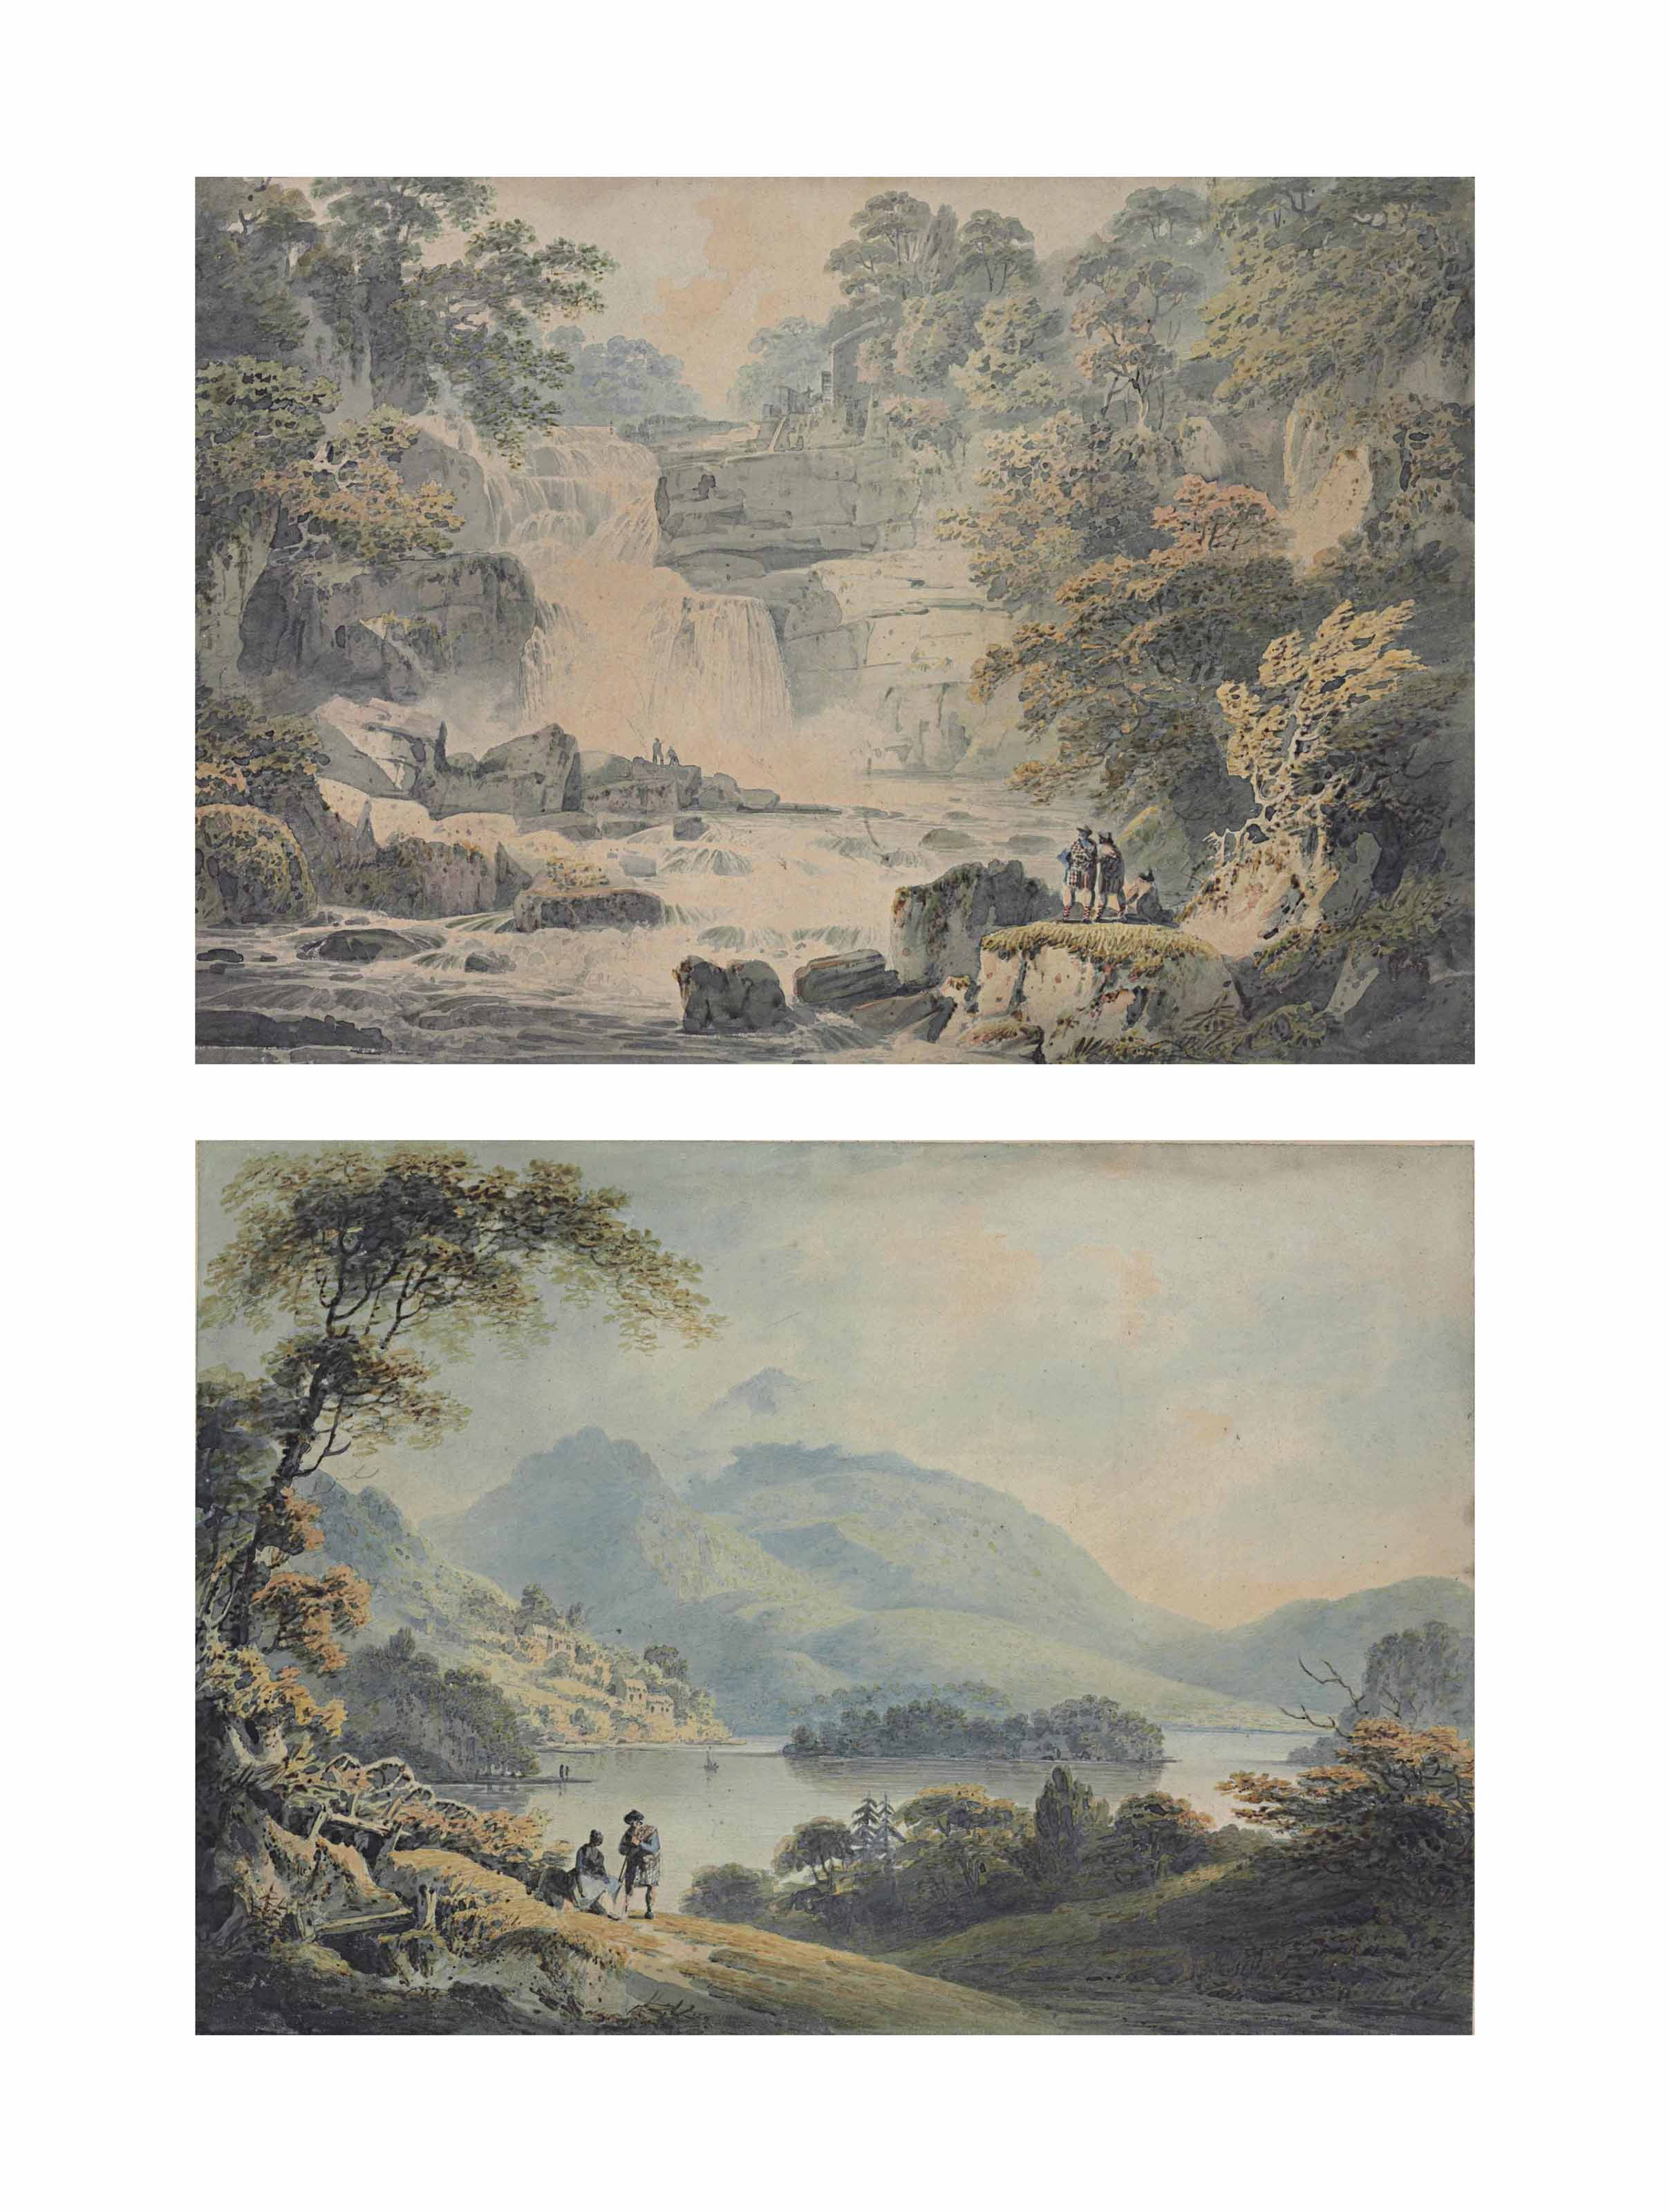 Stone Byer Lin, on the Clyde; and Loch Lomond